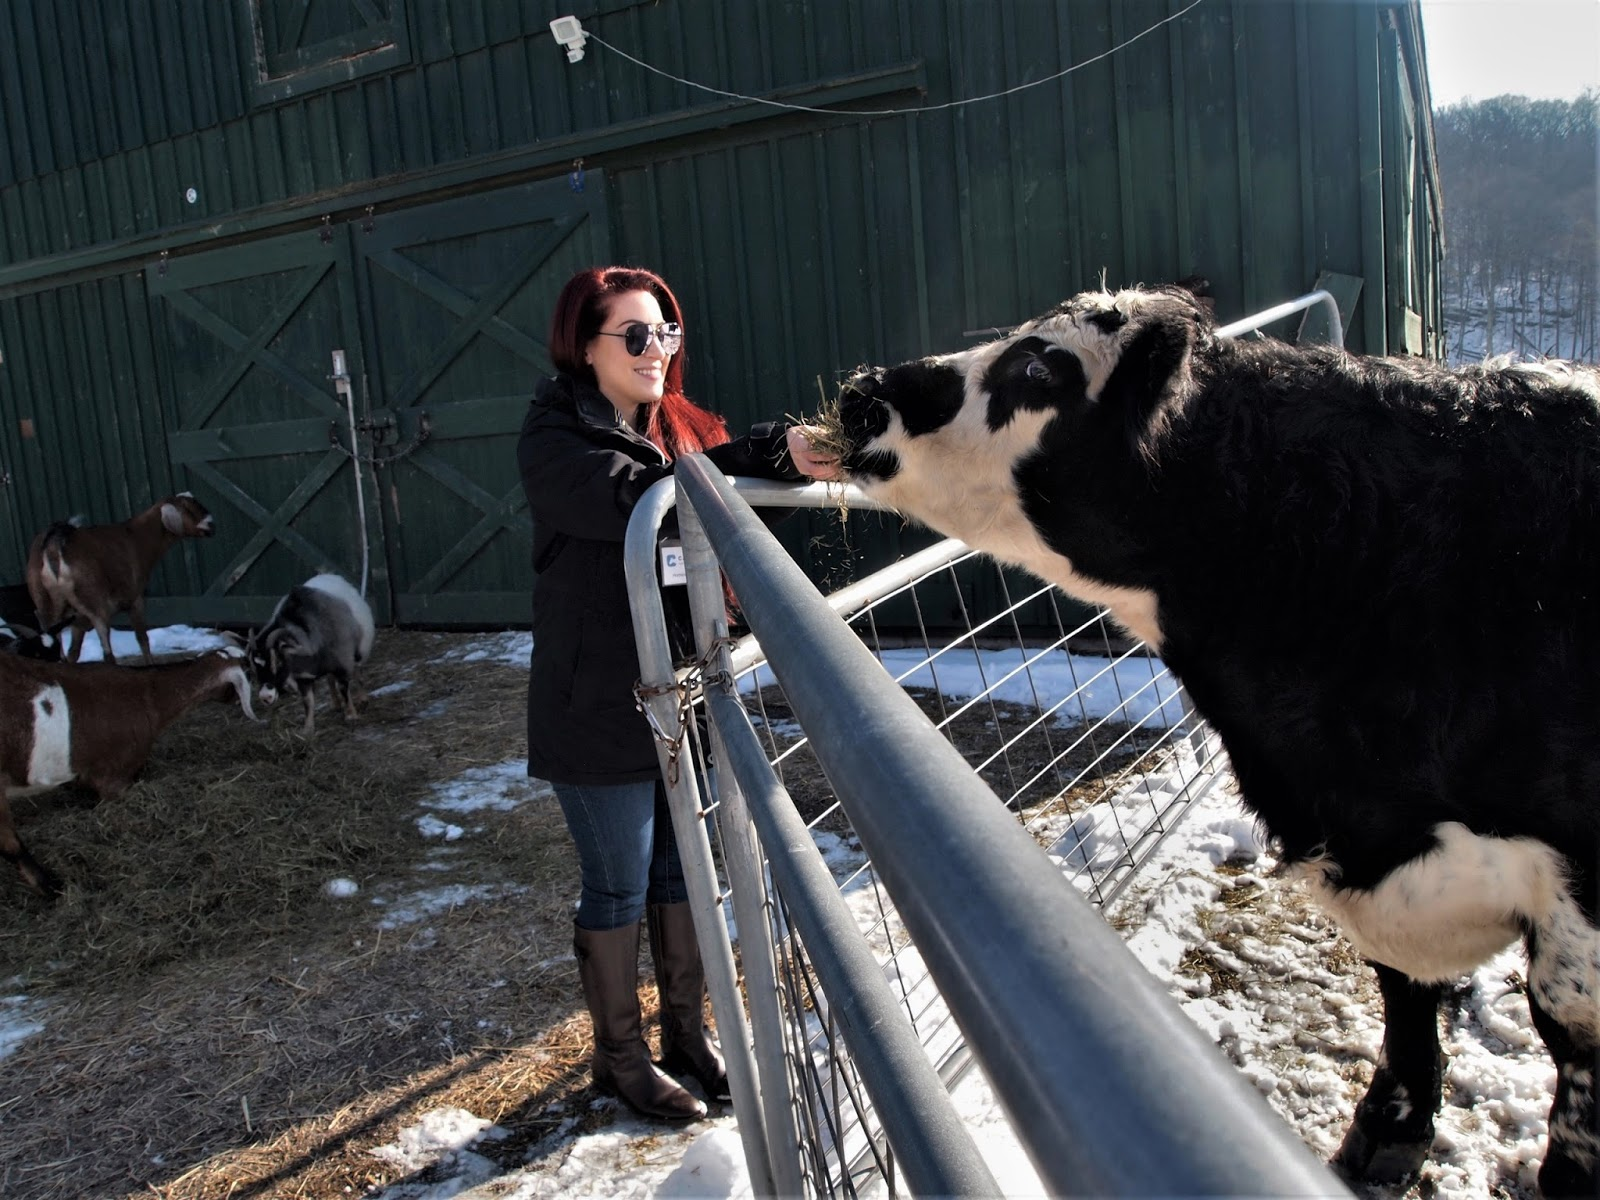 Veggie Amore: Our Weekend at the Catskill Animal Sanctuary